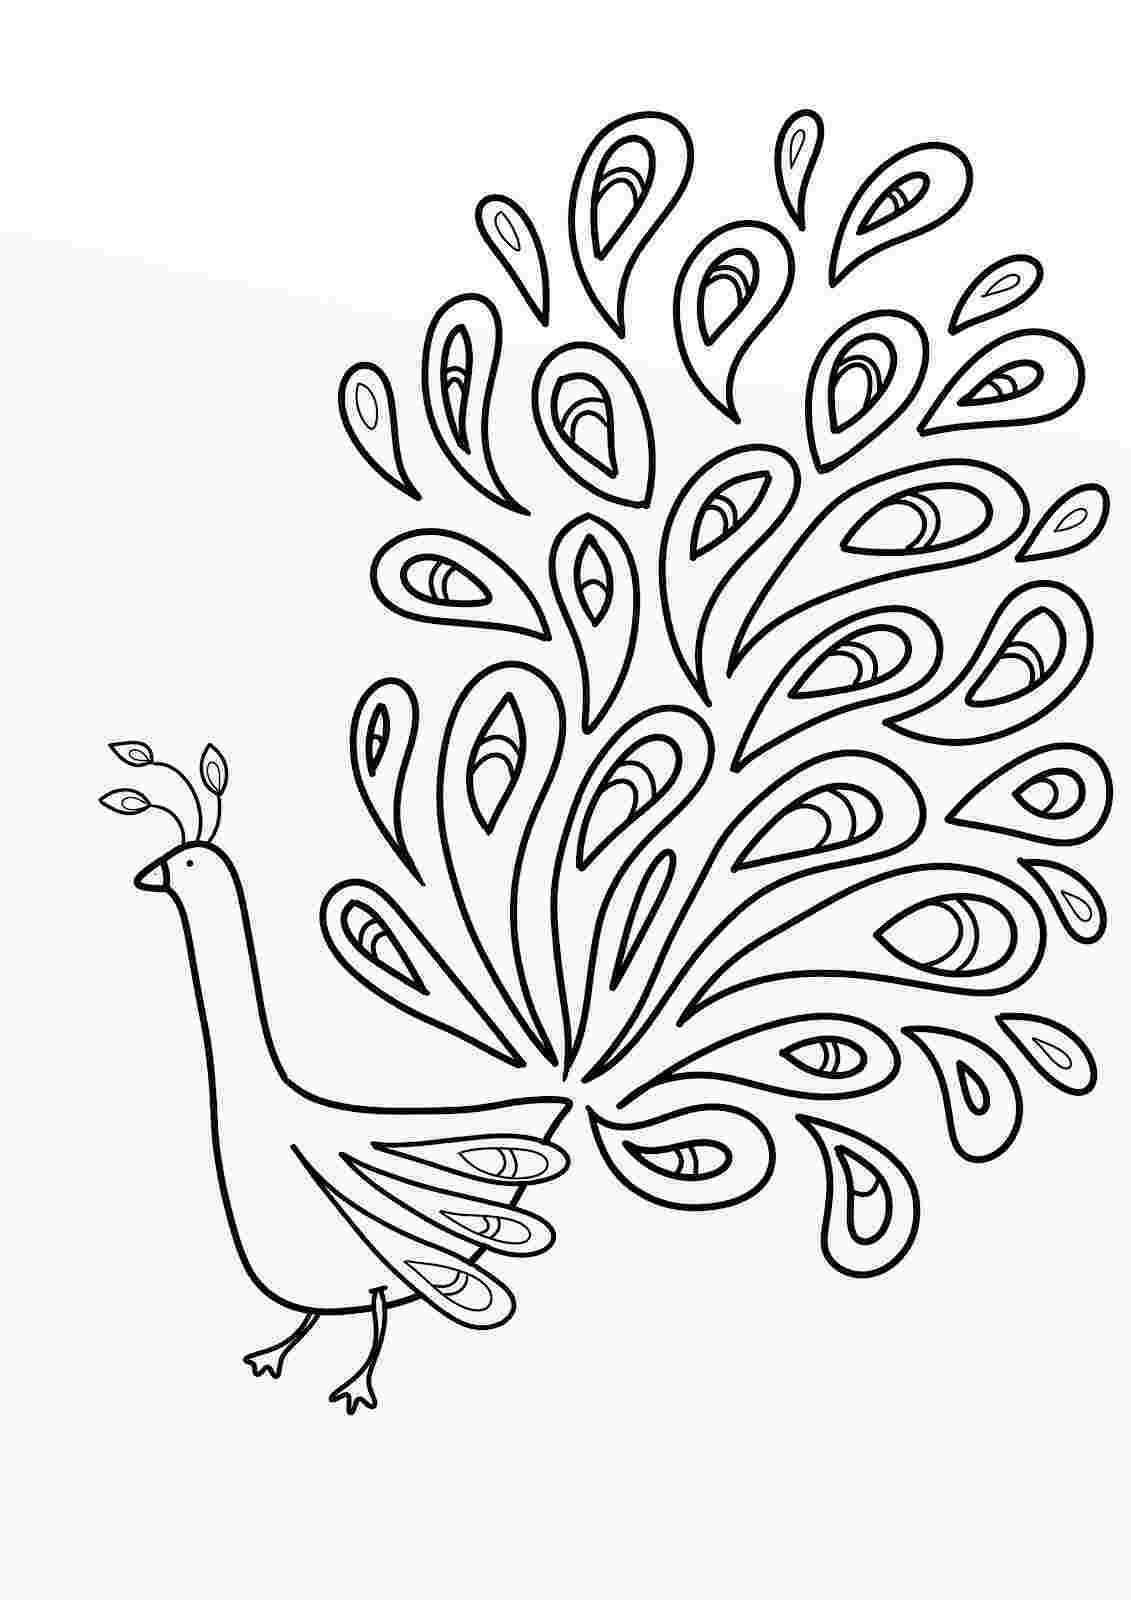 peacock pictures to color peacock coloring pages for kids color to peacock pictures